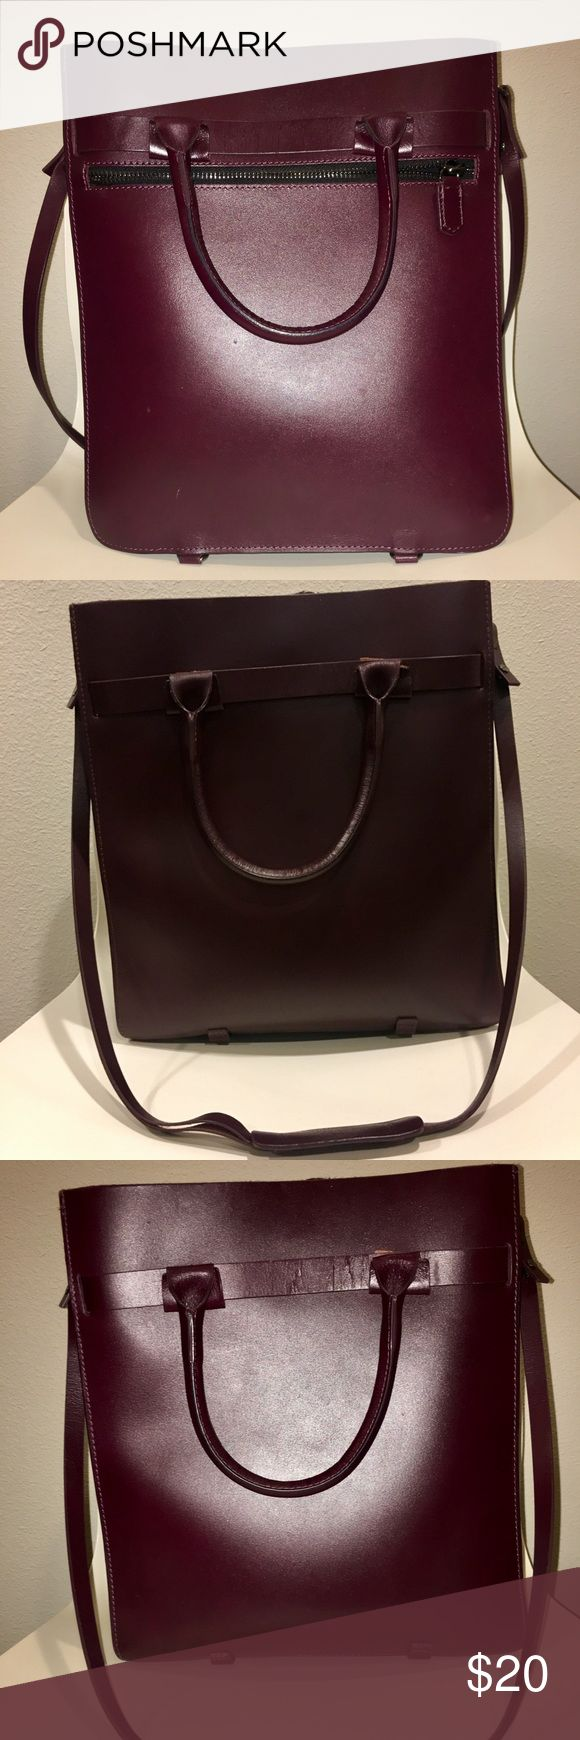 Structured Zara Tote Bag Very structured Zara tote bag. Great for laptops, binders and notebooks. The color is a dark plum. Beautifully structured bag! Zara Bags Totes